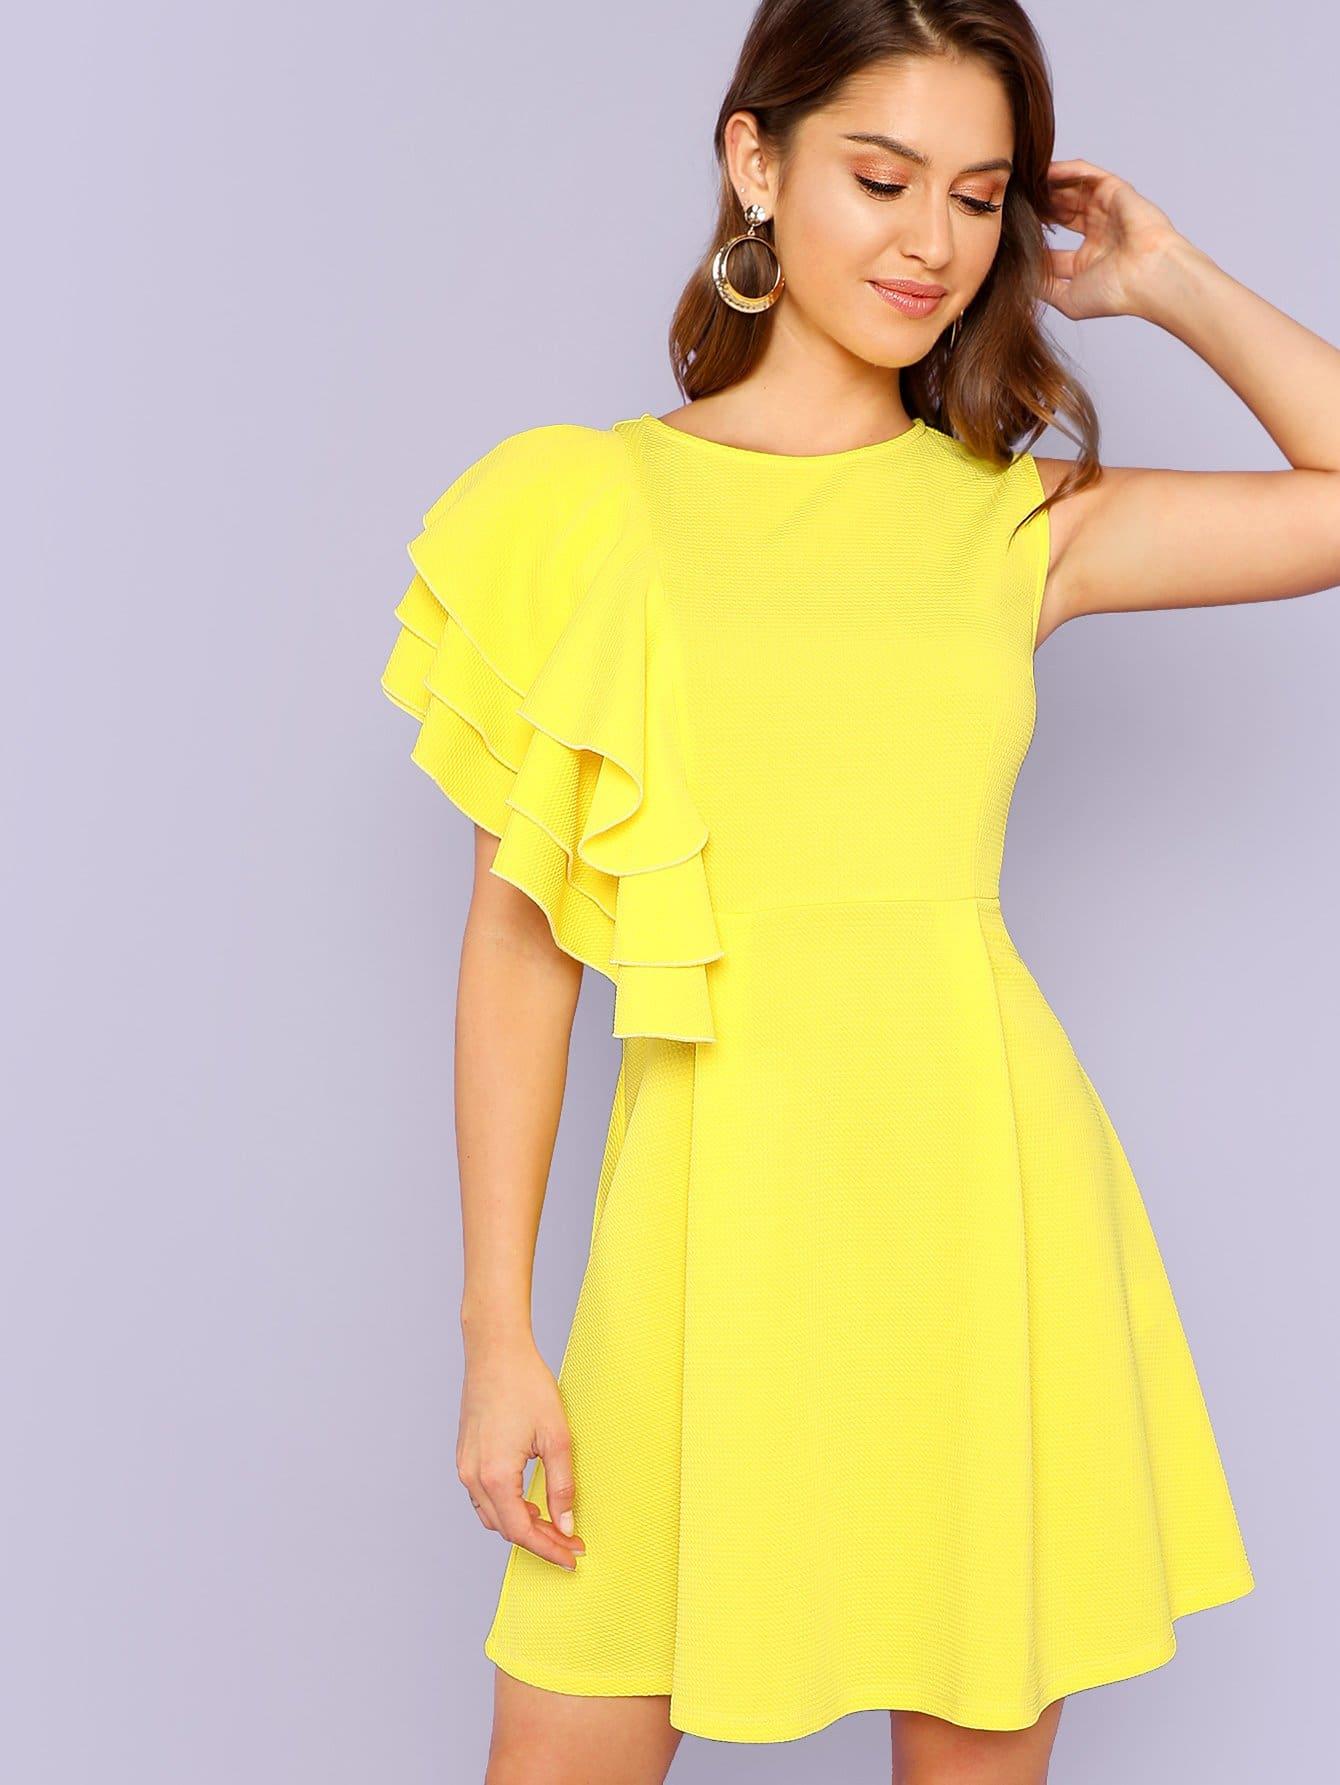 Layered Ruffle Trim Fit and Flare Dress fit and flare patterned dress